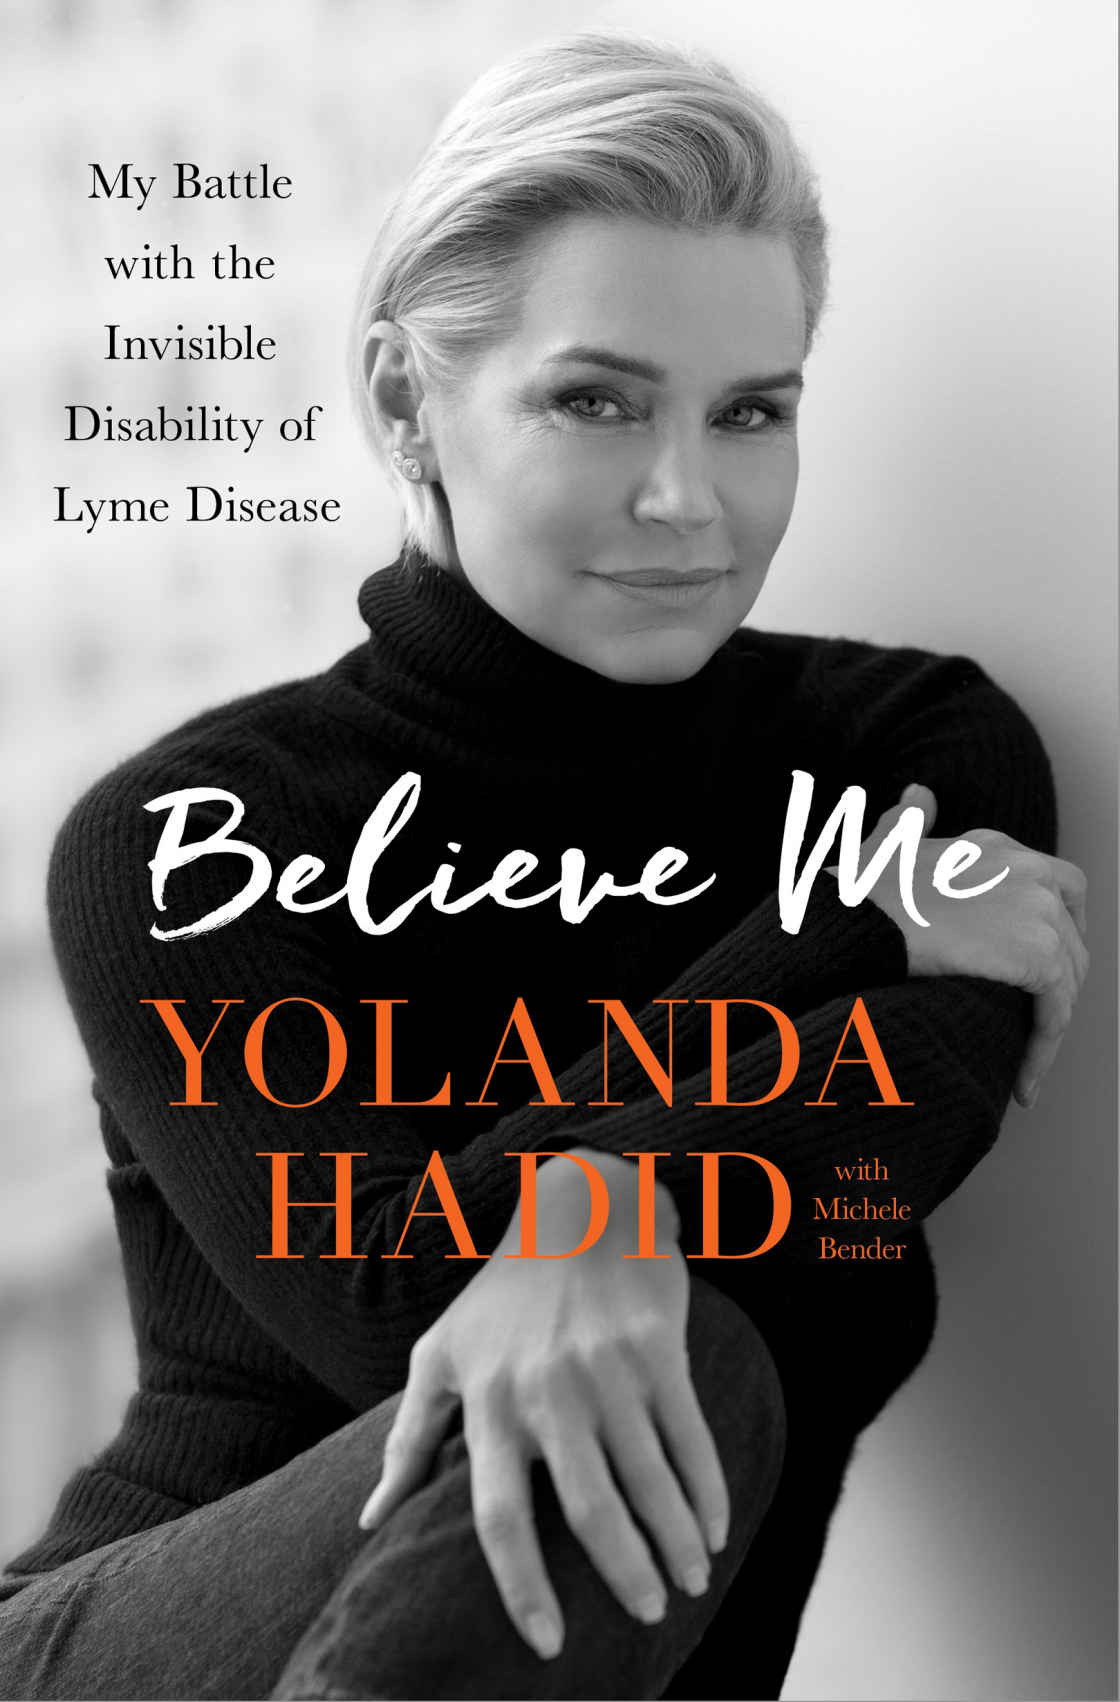 Yolanda Hadid, Believe Me: My Battle with the Invisible Disability of Lyme Disease